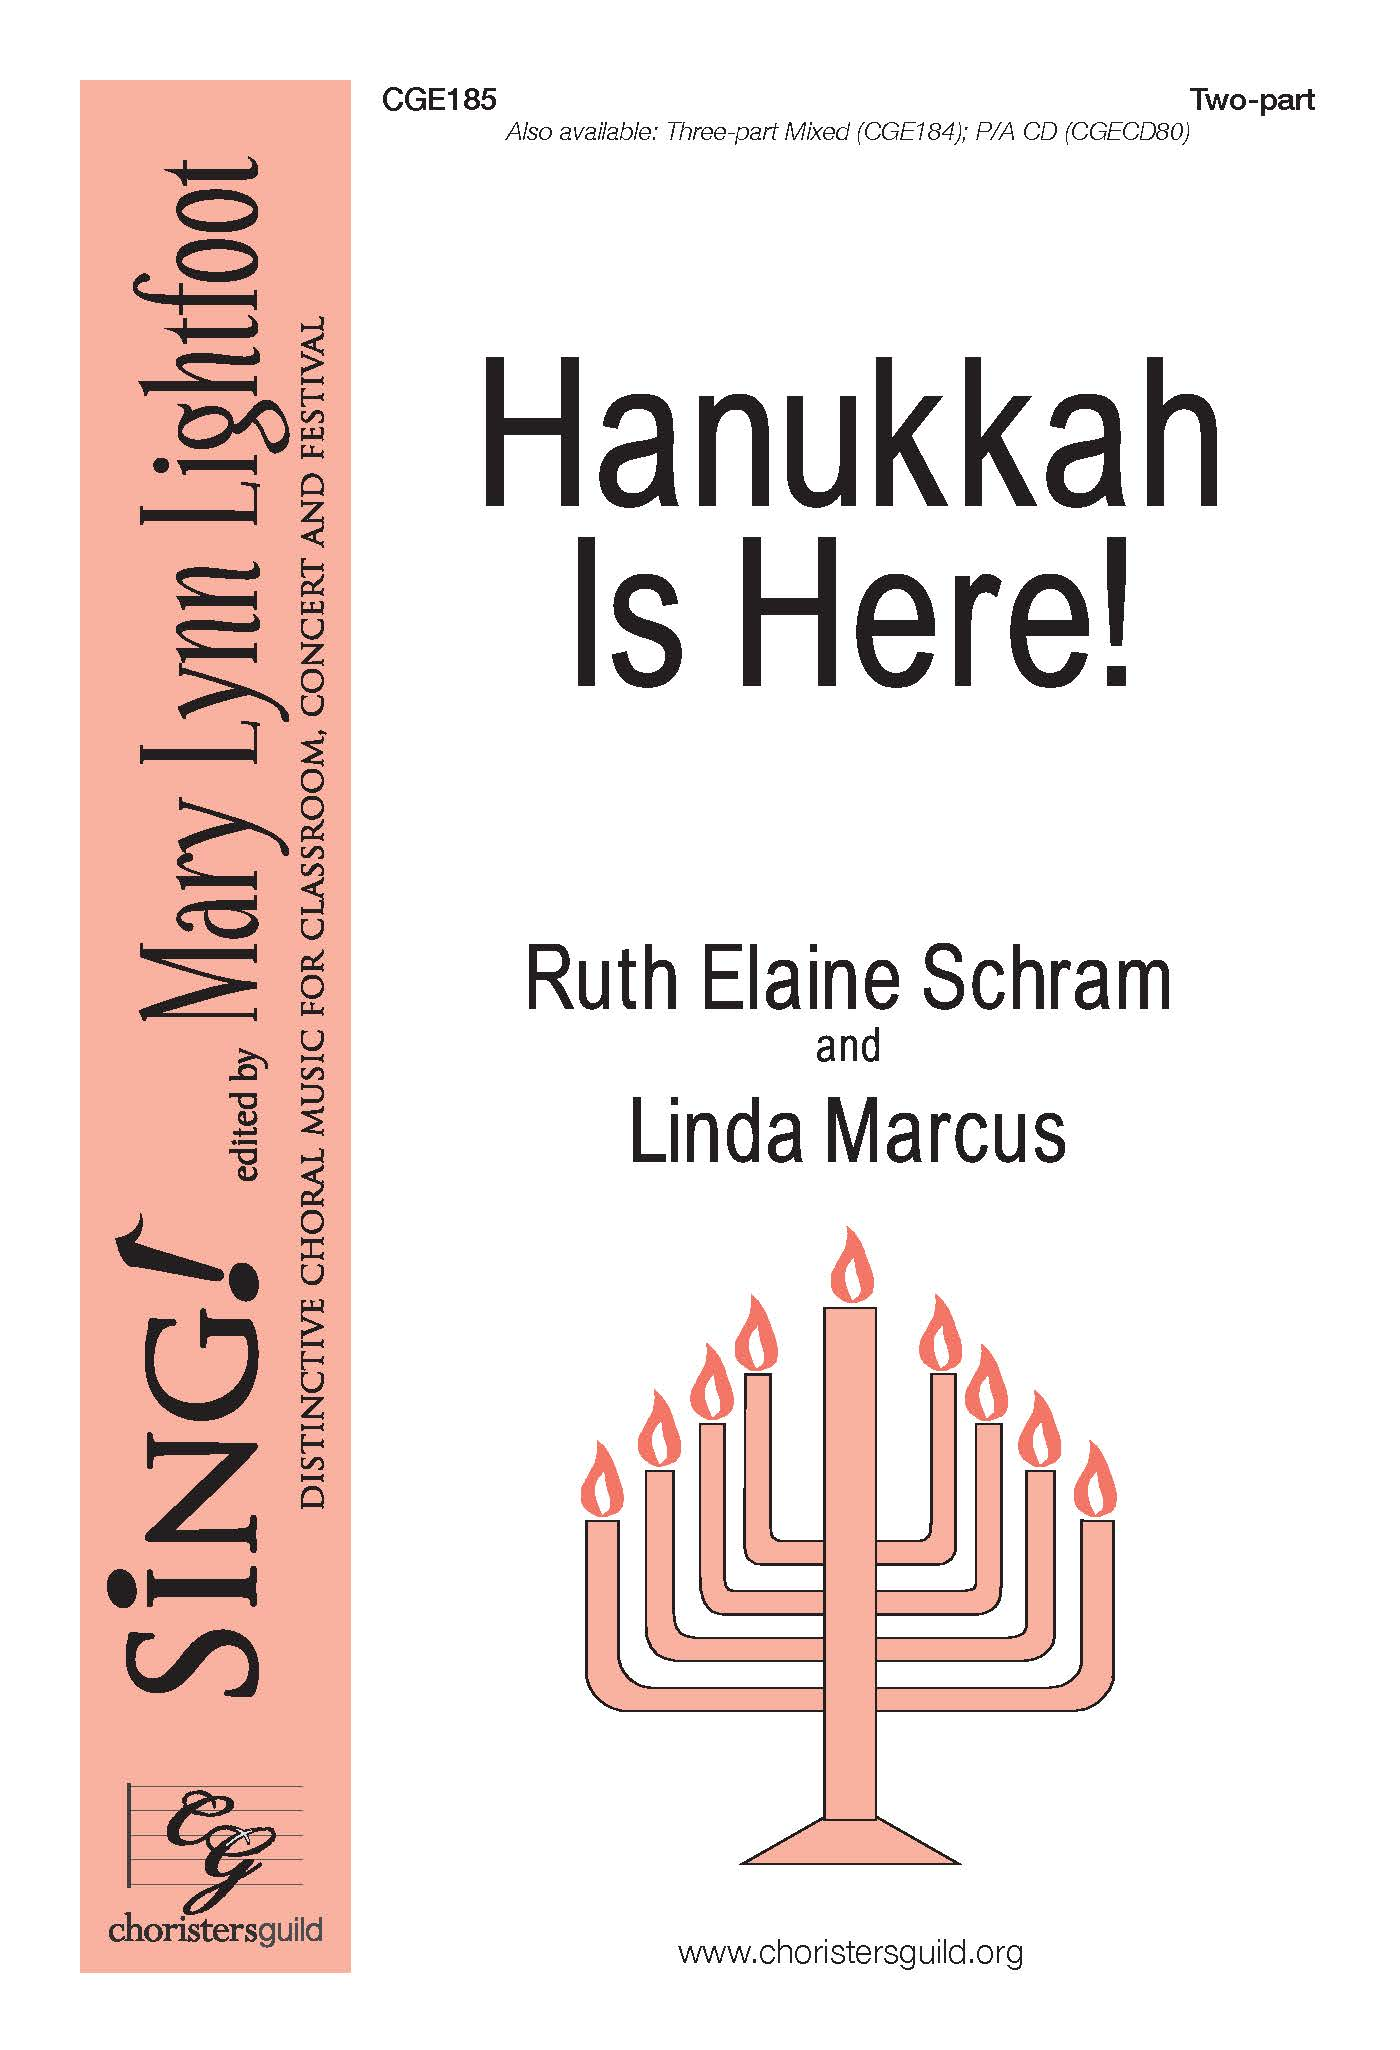 Hanukkah is Here! Two-part